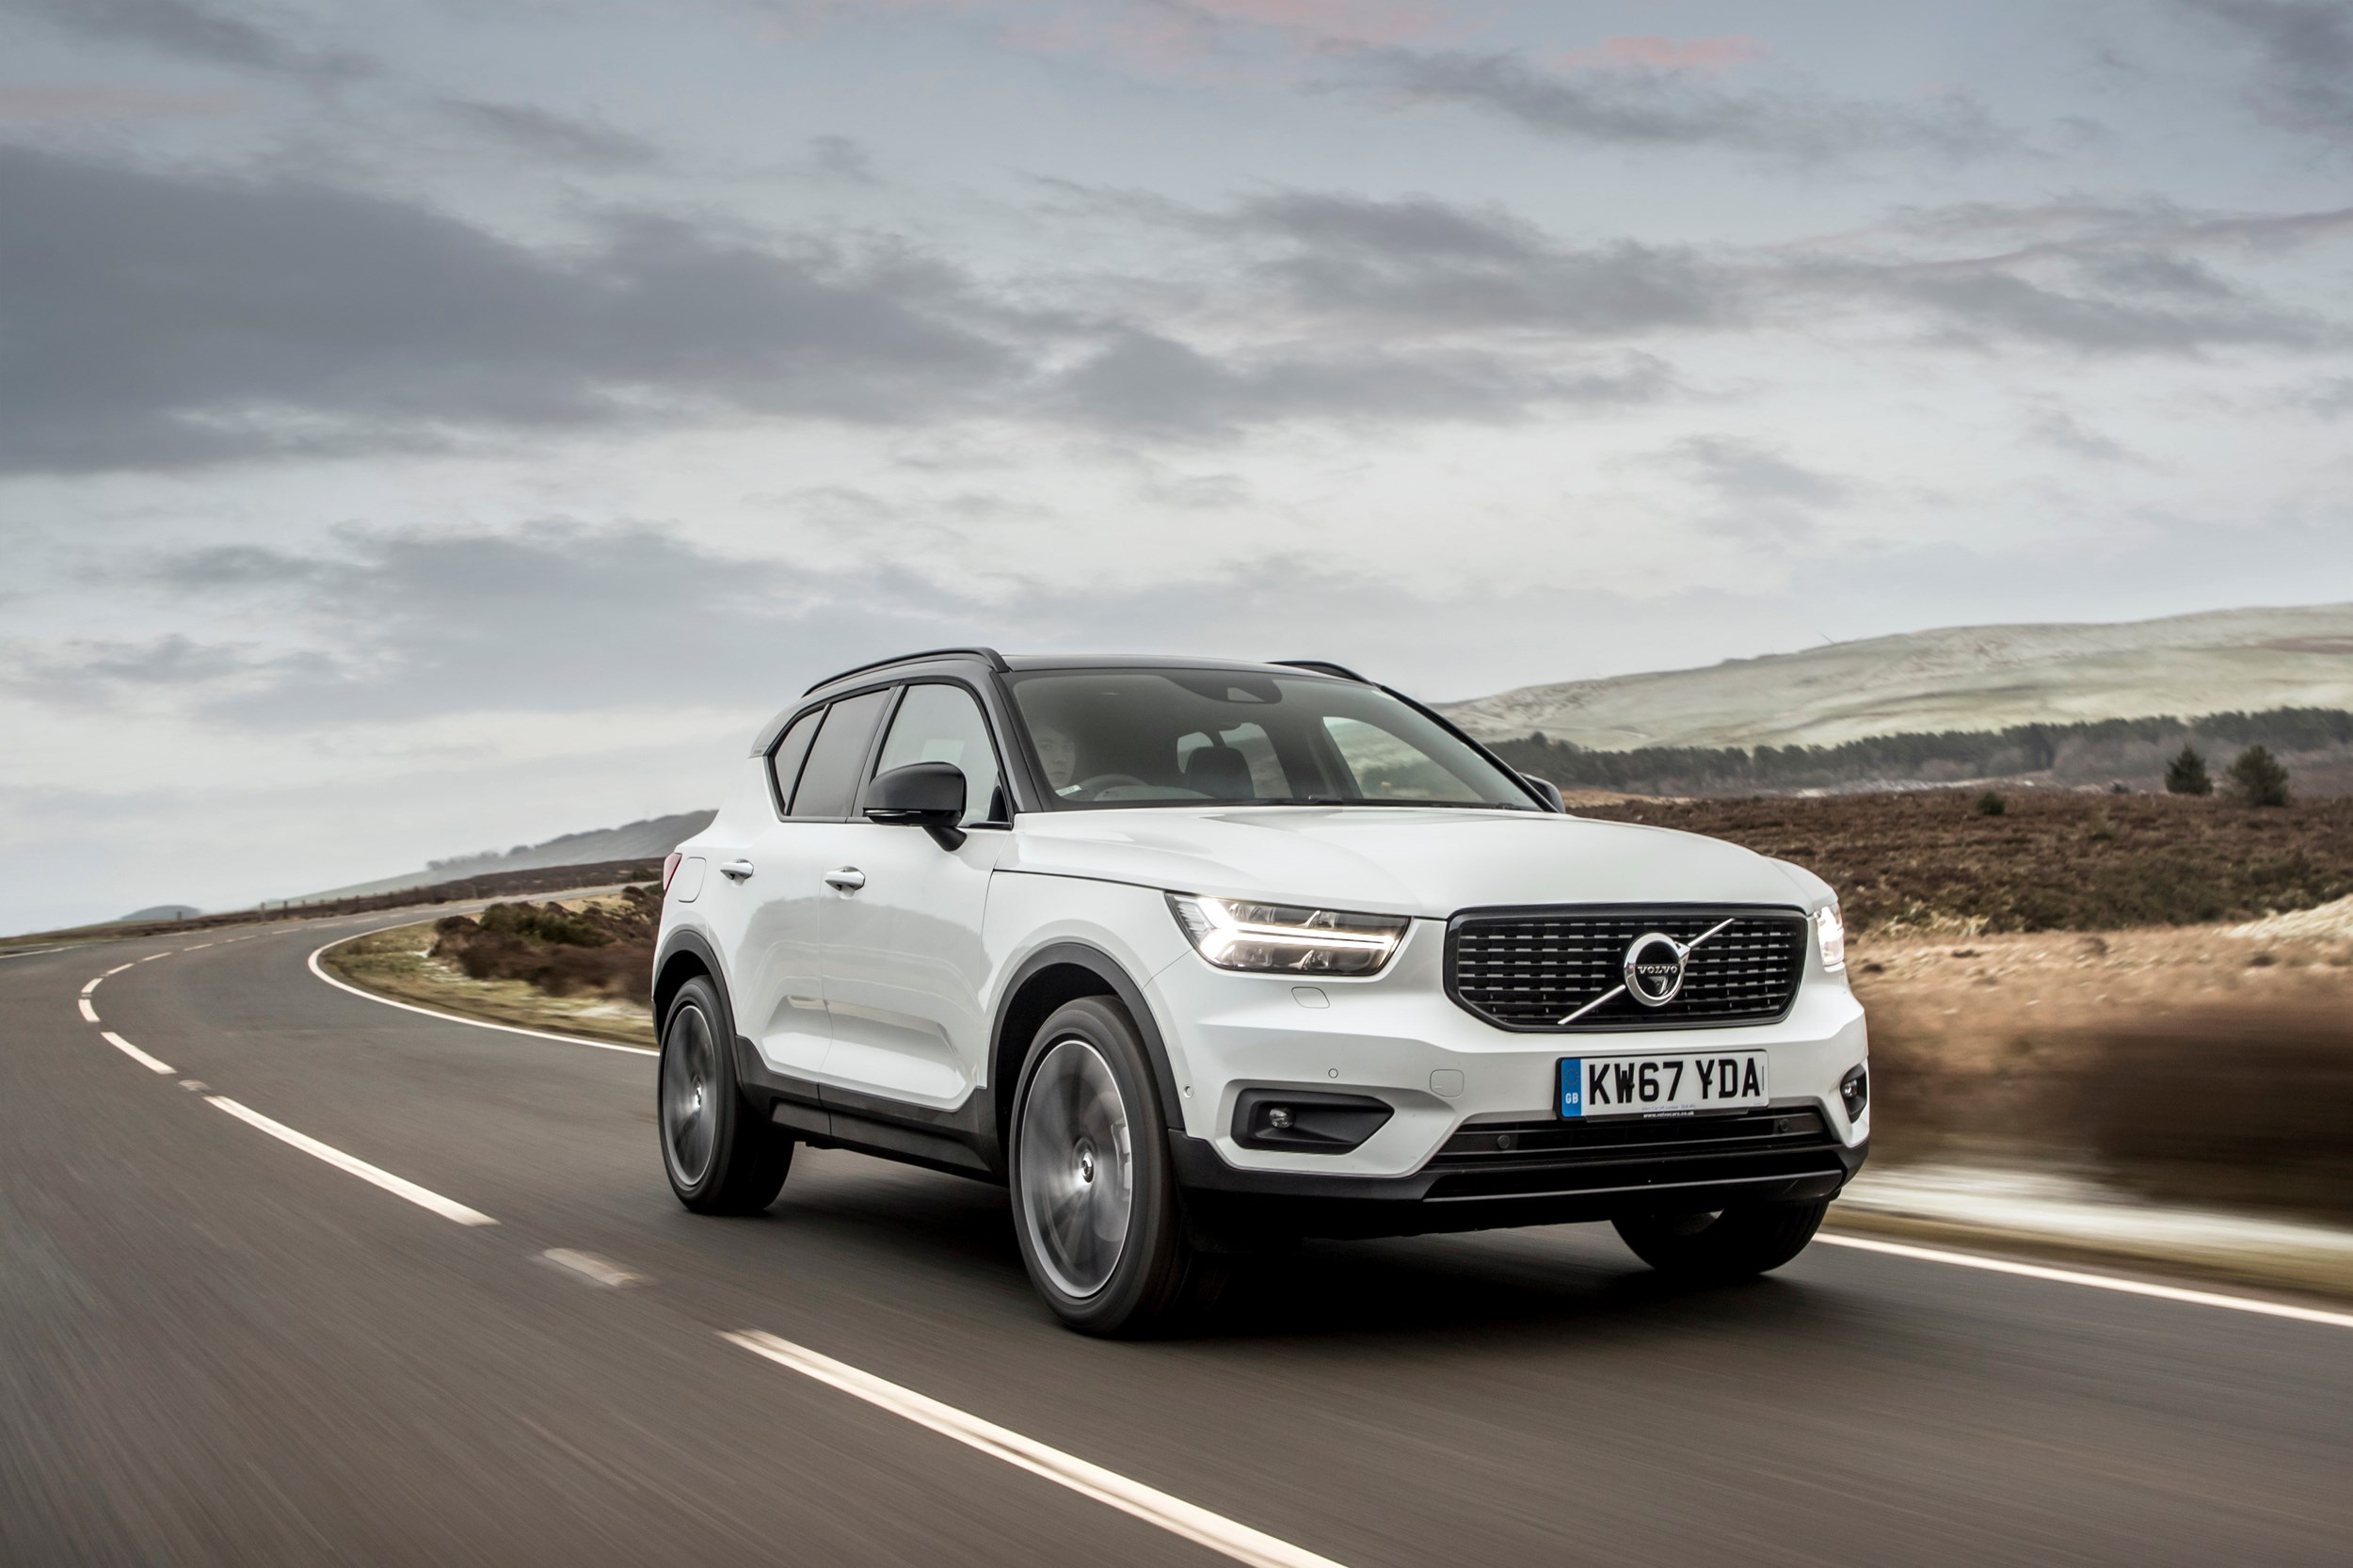 volvo xc40 road test and fuel consumption figures company car reviews. Black Bedroom Furniture Sets. Home Design Ideas